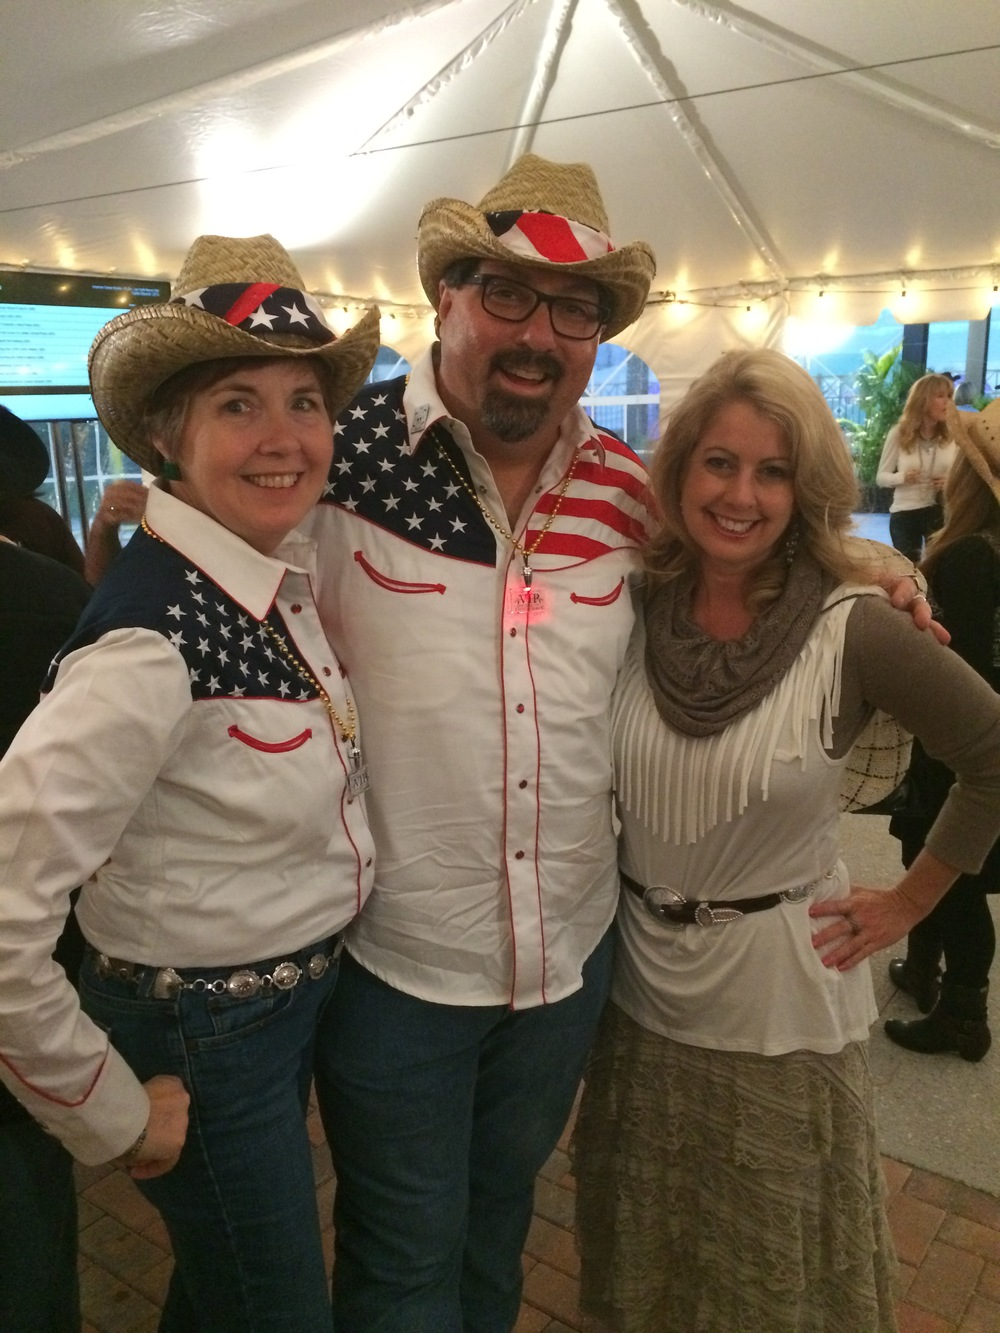 the-brilliants-kellie-and-bryon-mccartney-with-julie-harmon-at-the-cattle-barons-ball-2015.jpg